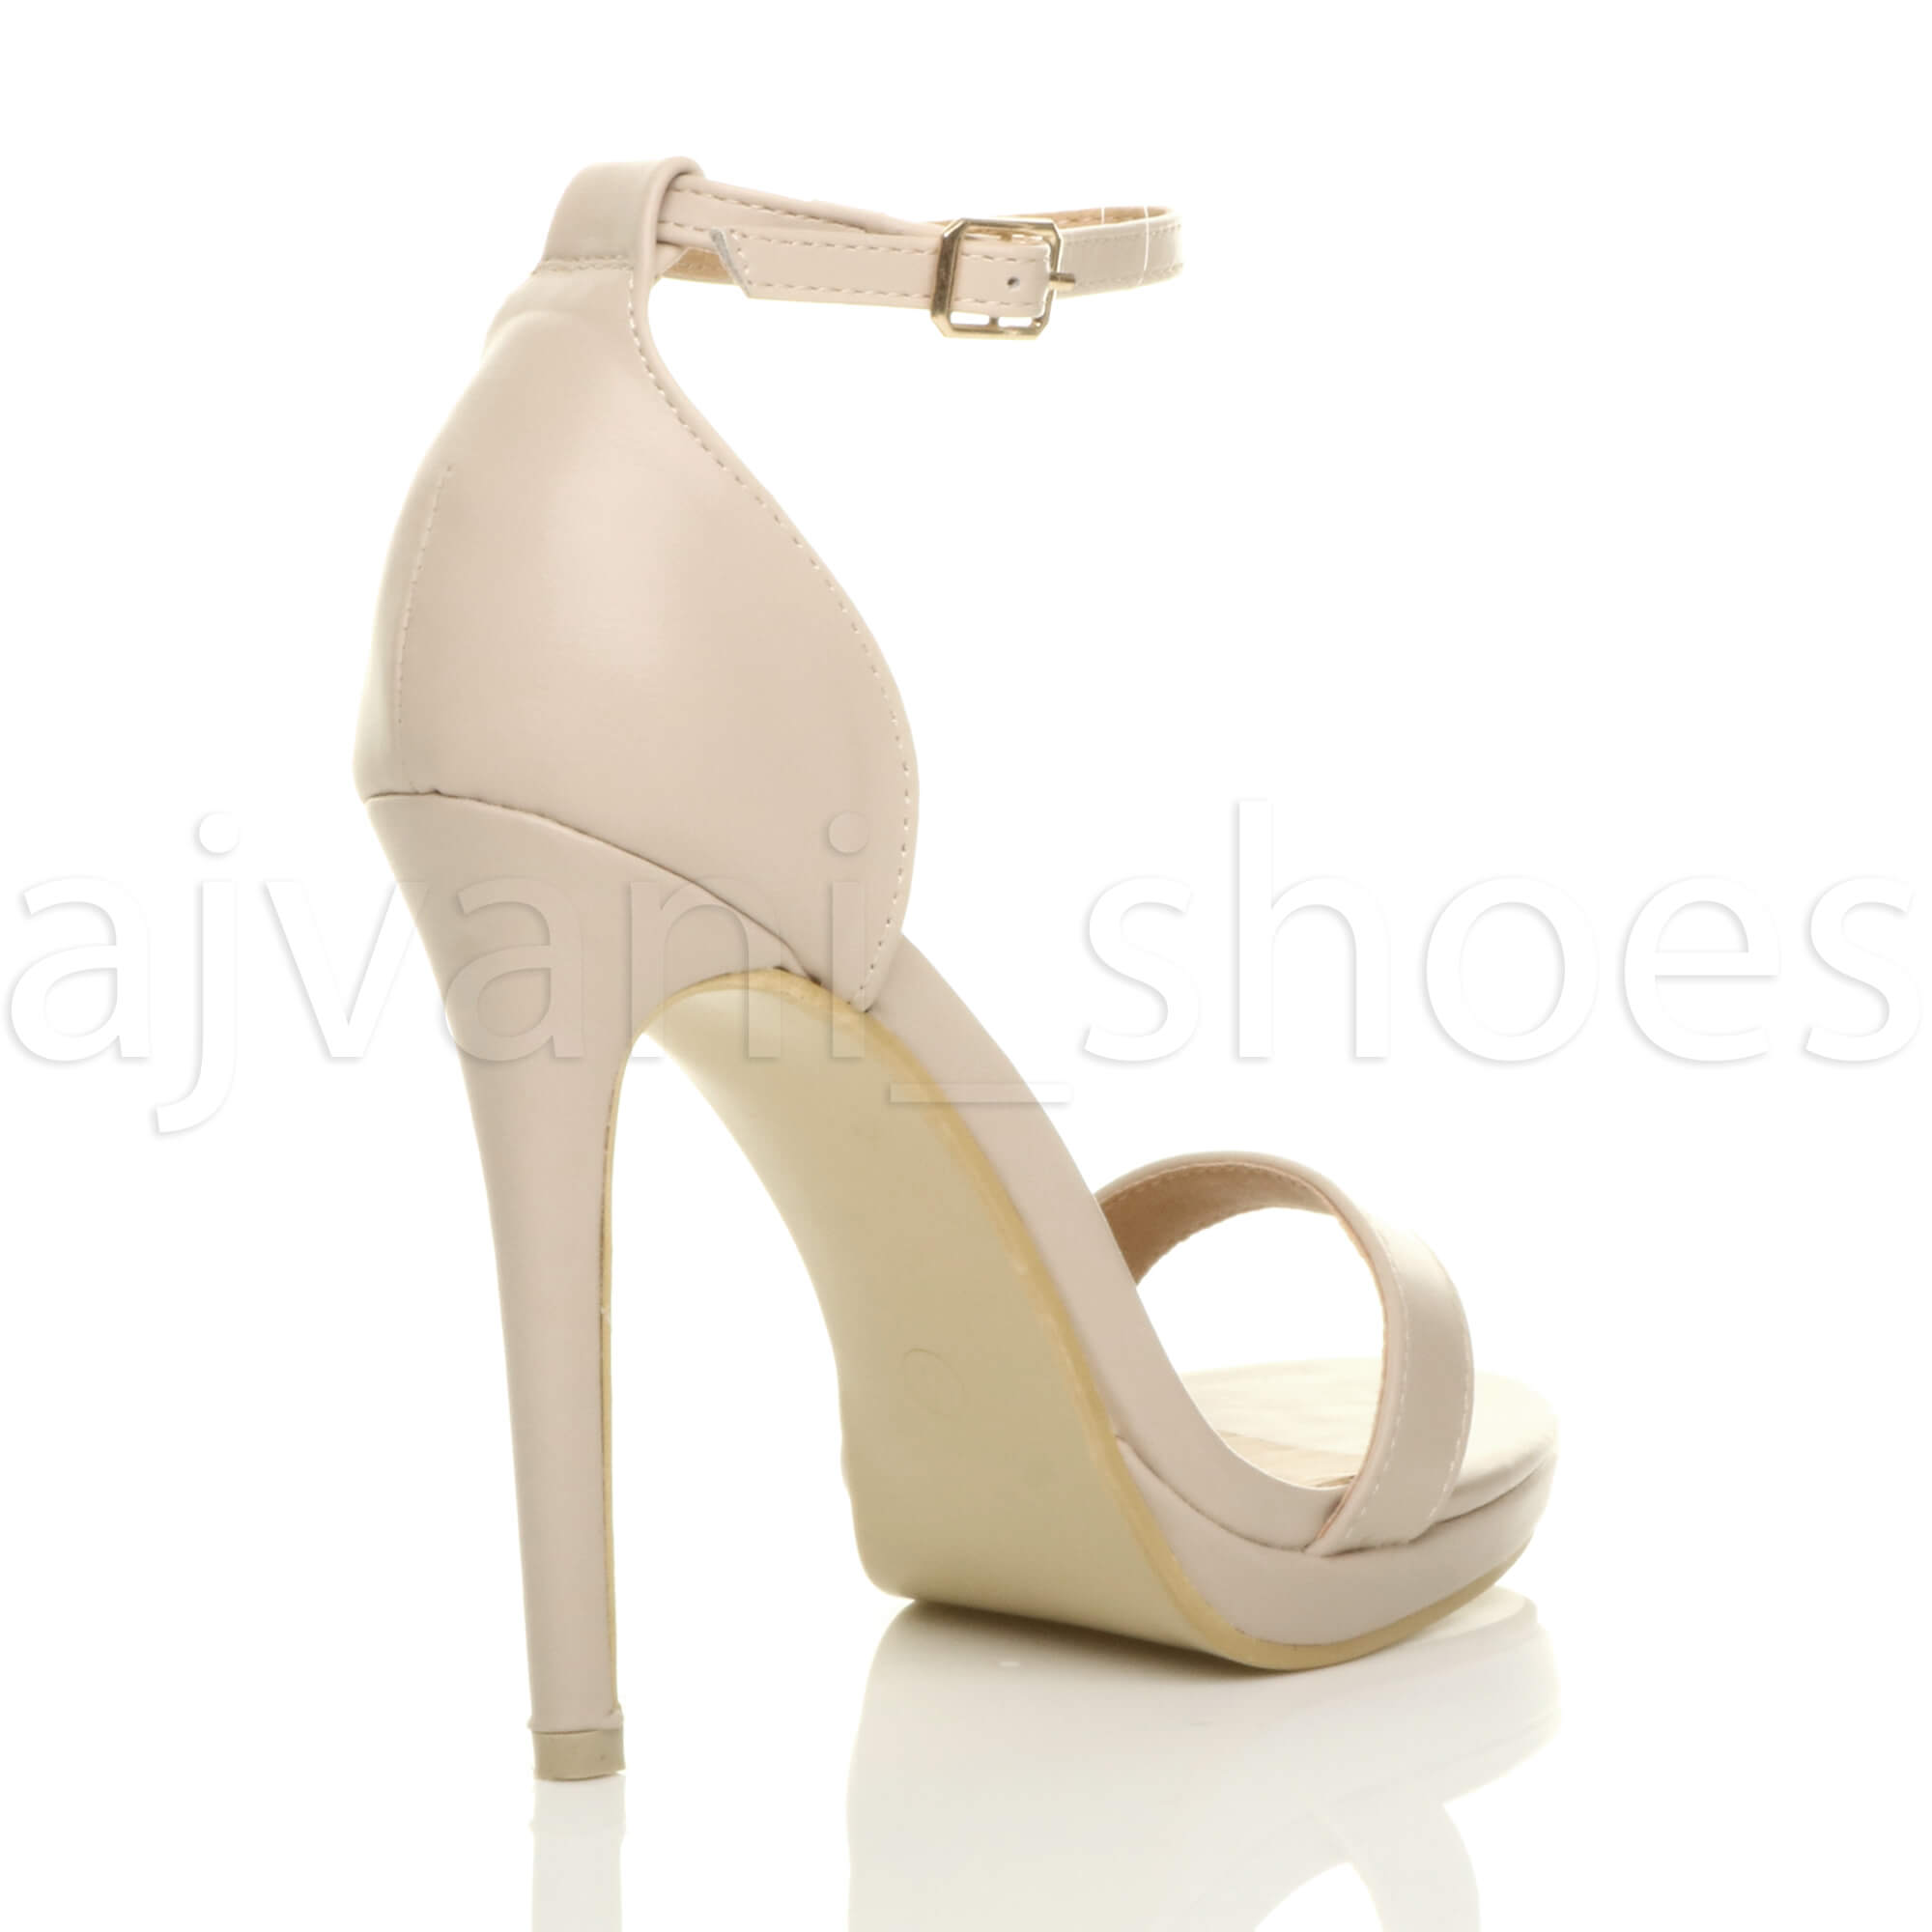 WOMENS-LADIES-HIGH-HEEL-PEEP-TOE-BARELY-THERE-ANKLE-STRAP-BUCKLE-SANDALS-SIZE